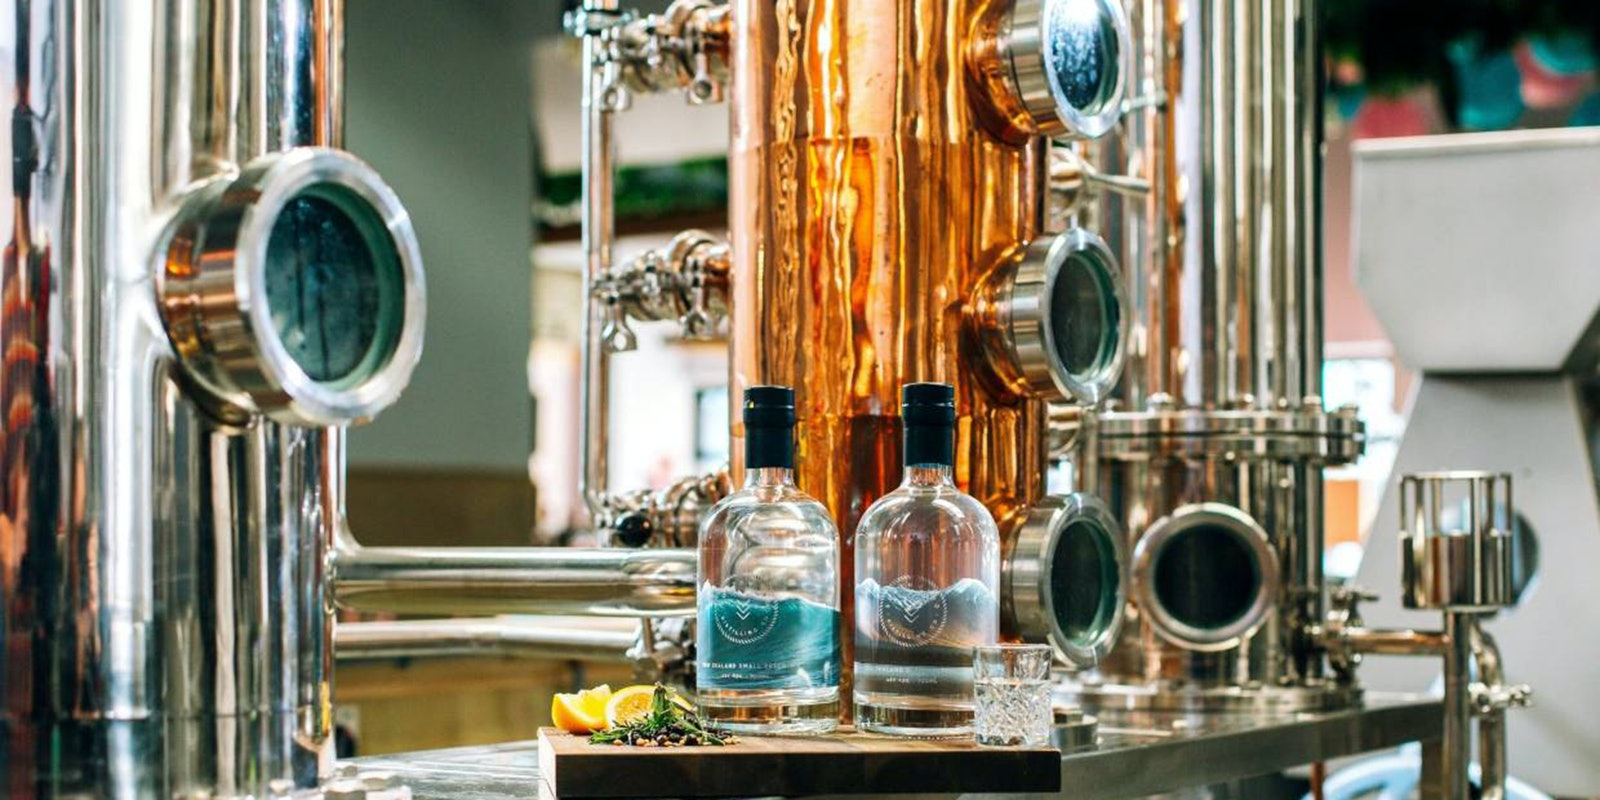 Infuse your own Gin